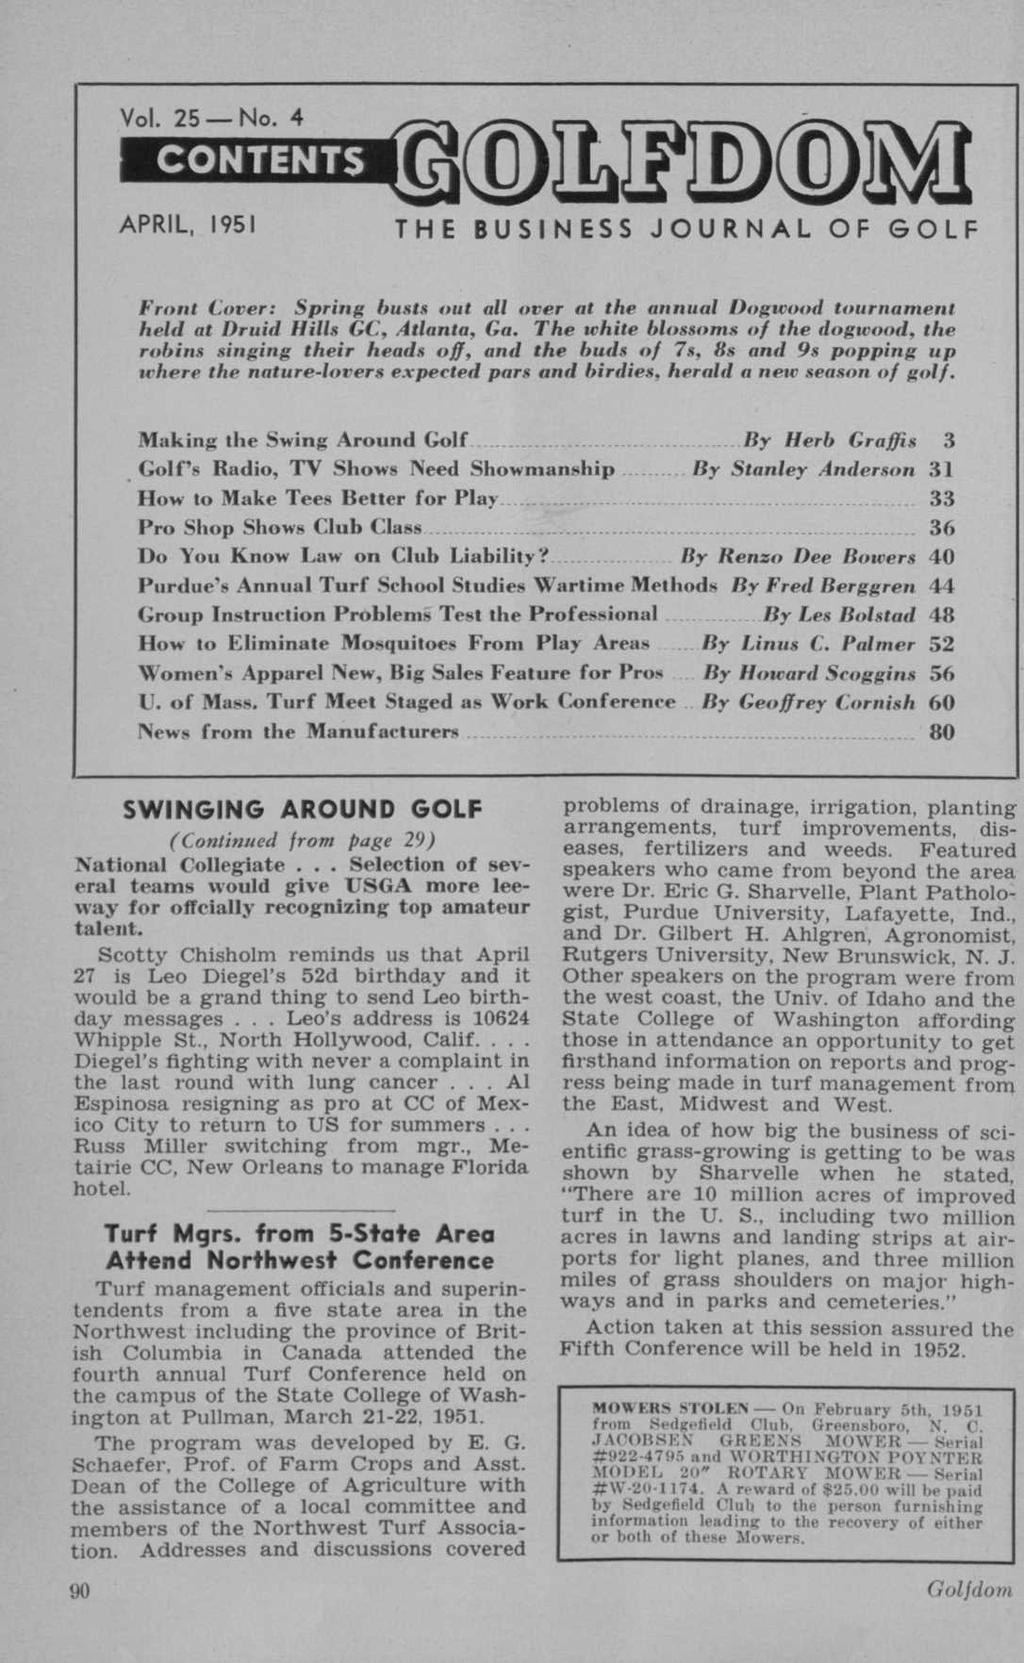 Vol. 25 No. 4 1 APRIL, 1951 THE BUSINESS JOURNAL OF GOLF Front Cover: Spring busts out all over at the annual Dogwood tournament held at Druid Hills GC, Atlanta, Ga.